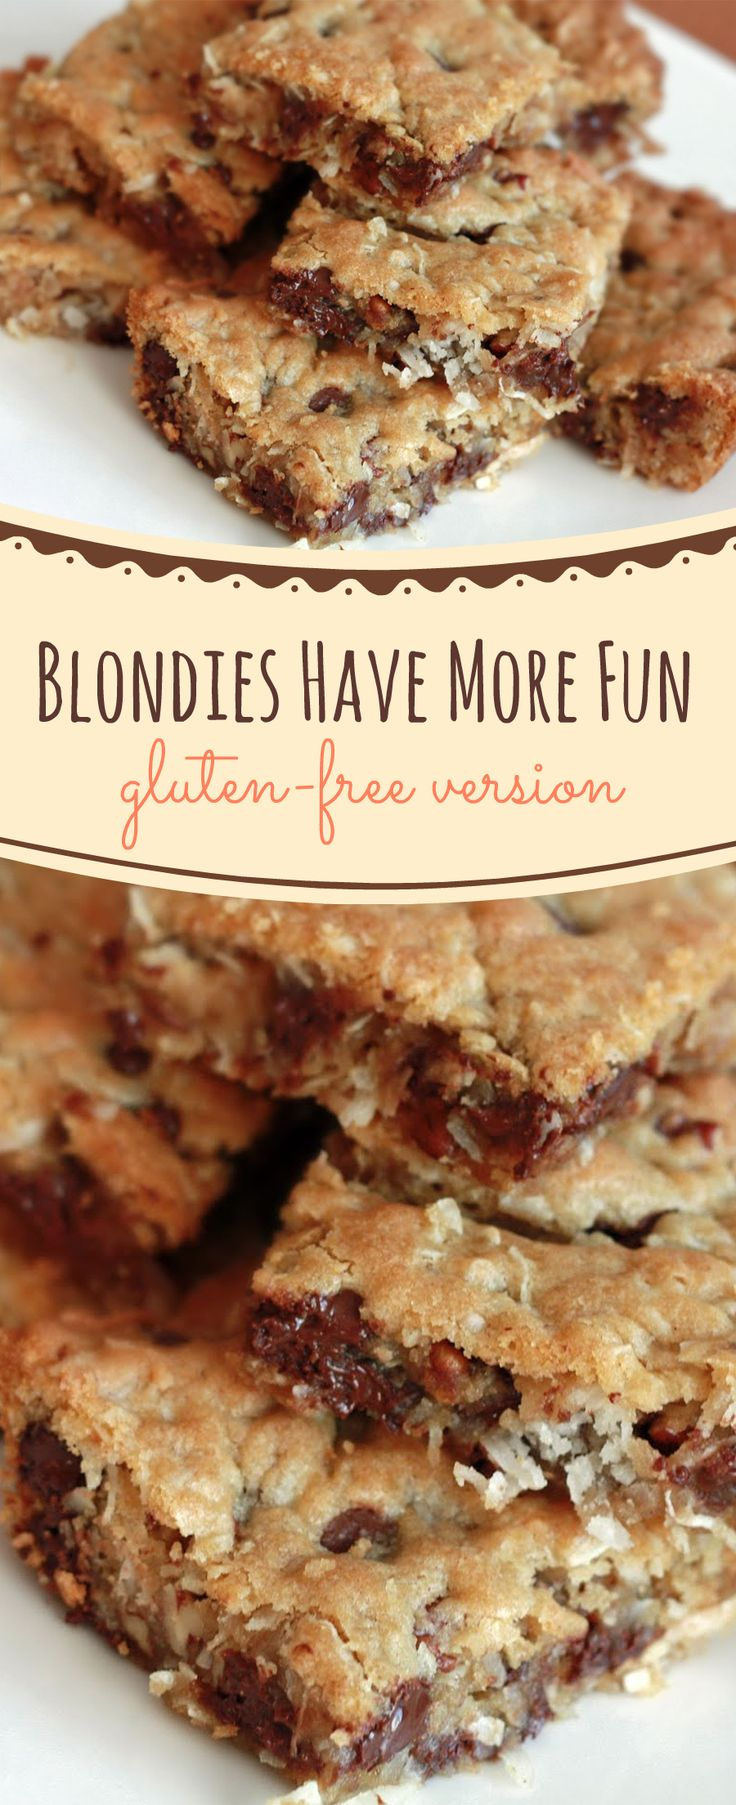 I always get requests for #glutenfree desserts, so I'm going to share with you my latest version of these blondies, which is gluten-free and of course all #healthy! ==>> thedessertangel.com/blondies-have-more-fun-pin